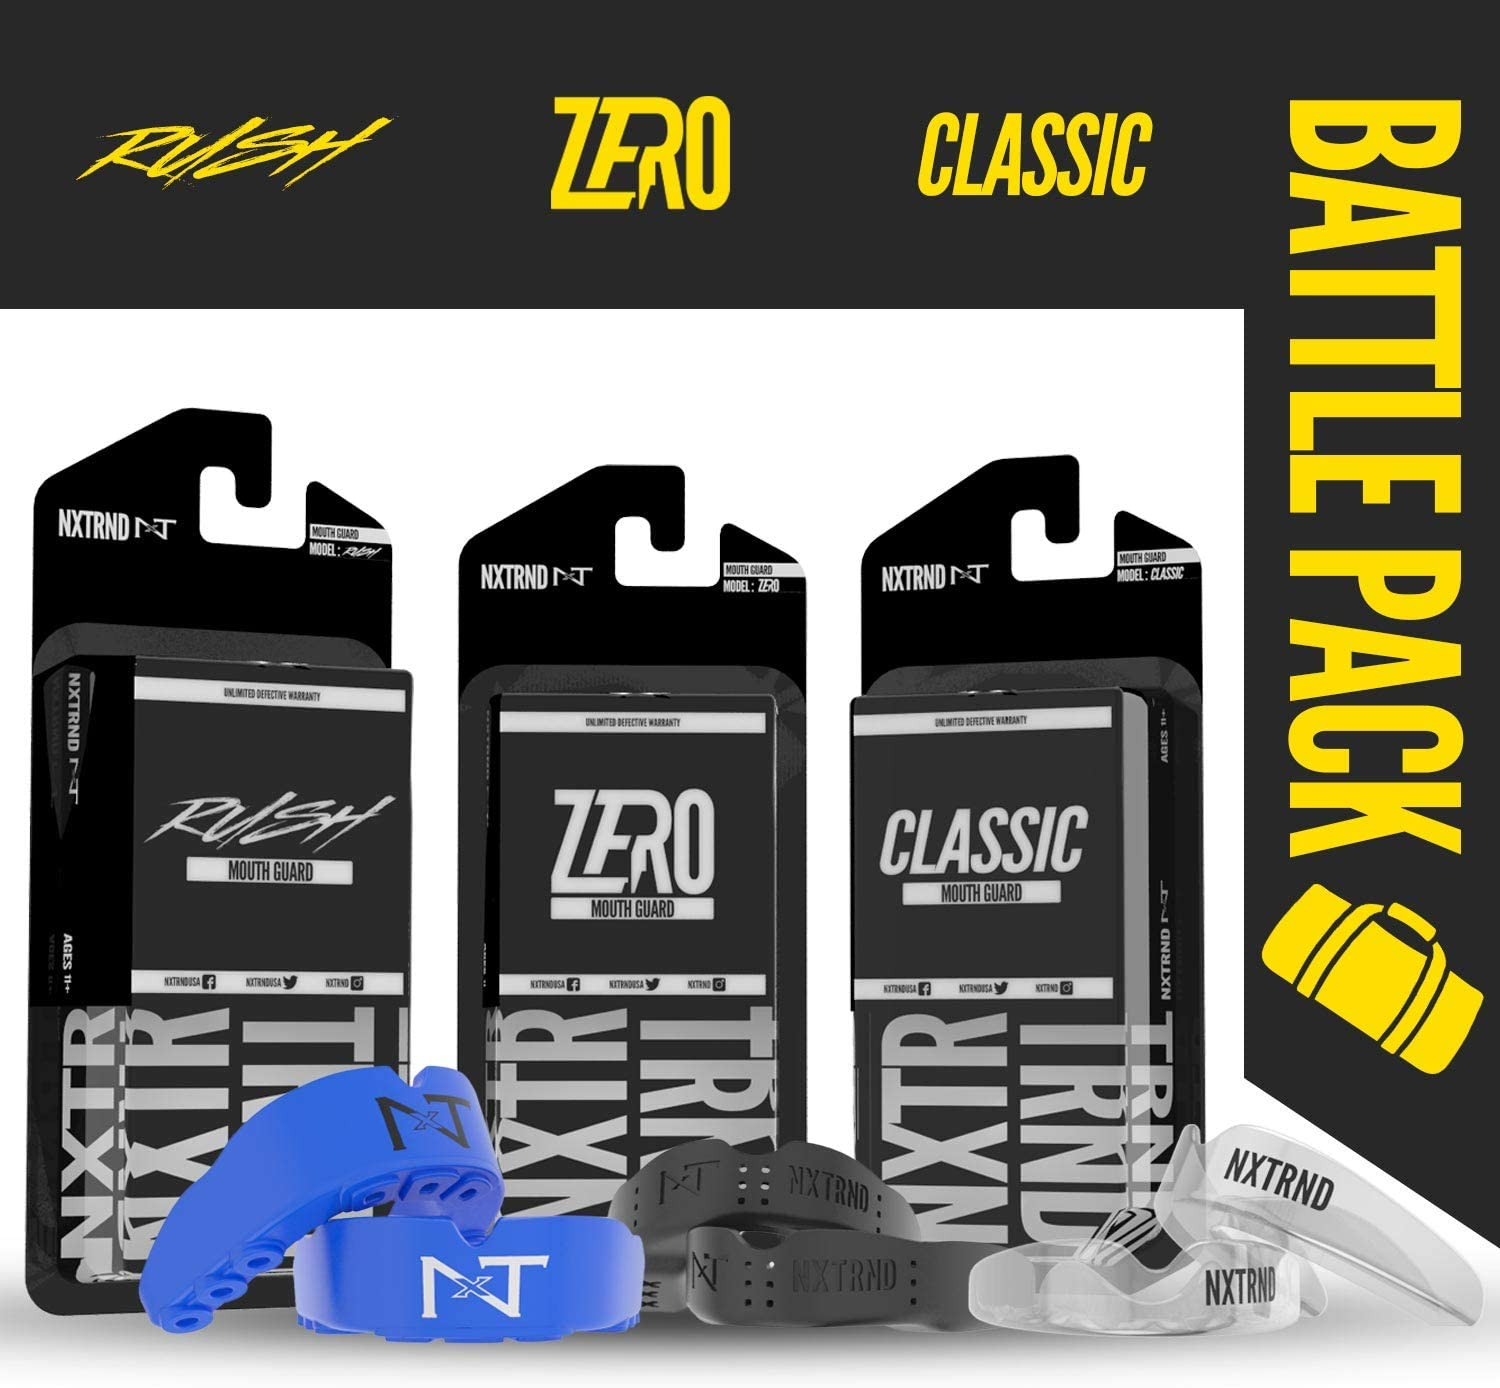 Nxtrnd Premium Battle Pack Blue – Nxtrnd Professional Mouth Guard Sports Kit for Training, Sparring, Fighting, All in One Fighters Bundle, Includes 6 Mouthguards & 3 Mouth Guard Cases